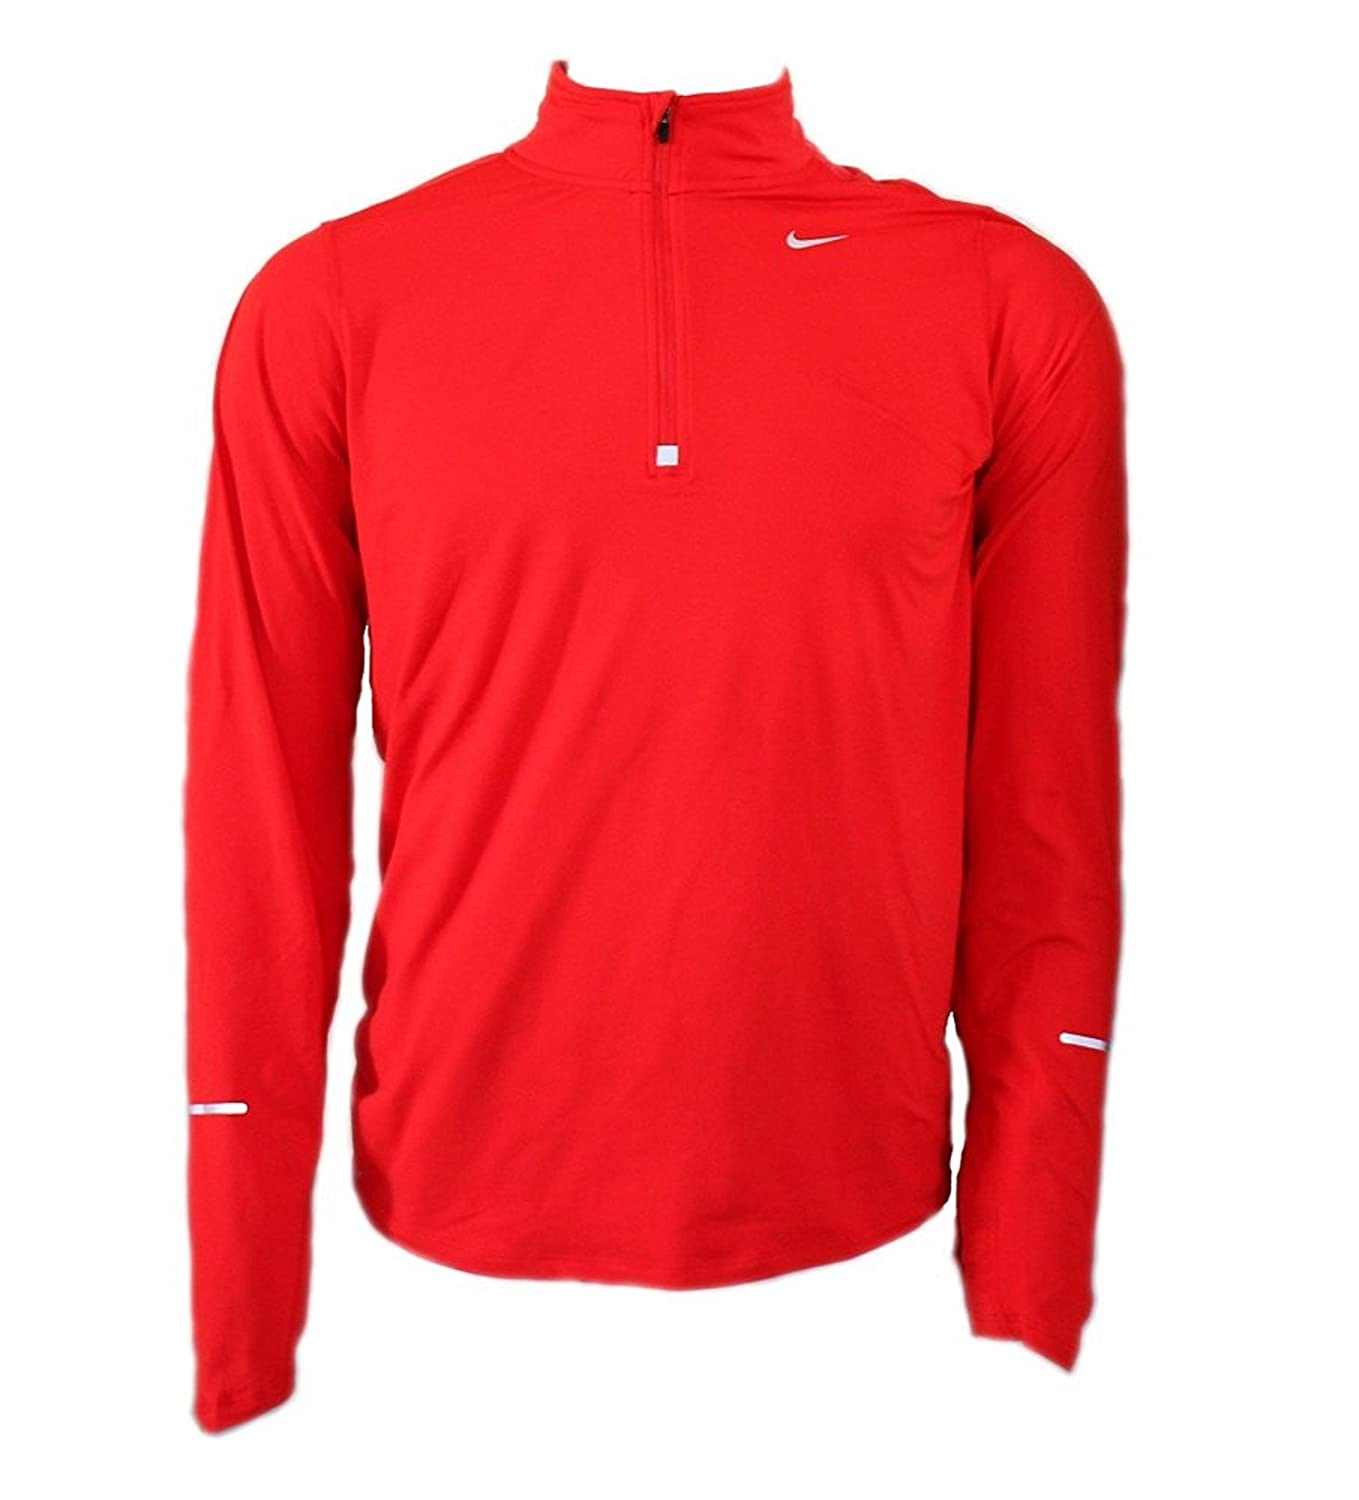 NIKE Men's Dry Element Running Top B013FKH2DE XX-Large Red/Reflective Silver